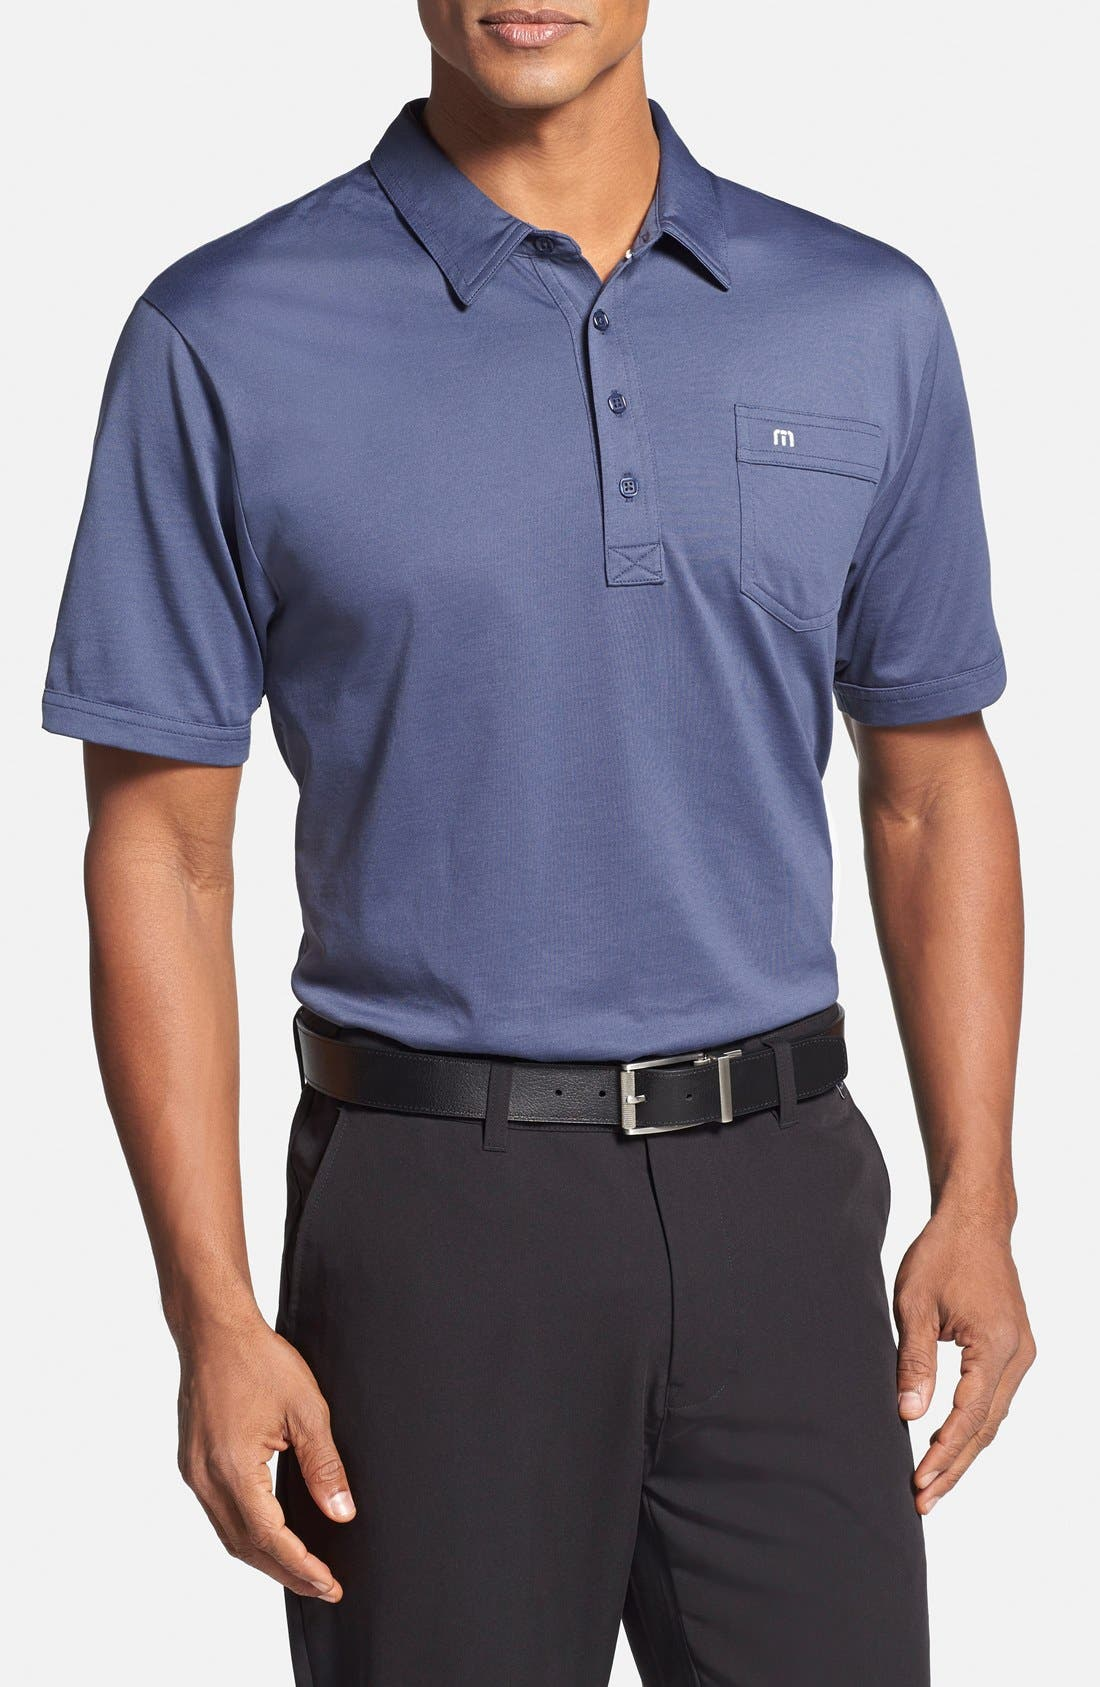 Alternate Image 1 Selected - Travis Mathew 'OG' Trim Fit Performance Golf Polo